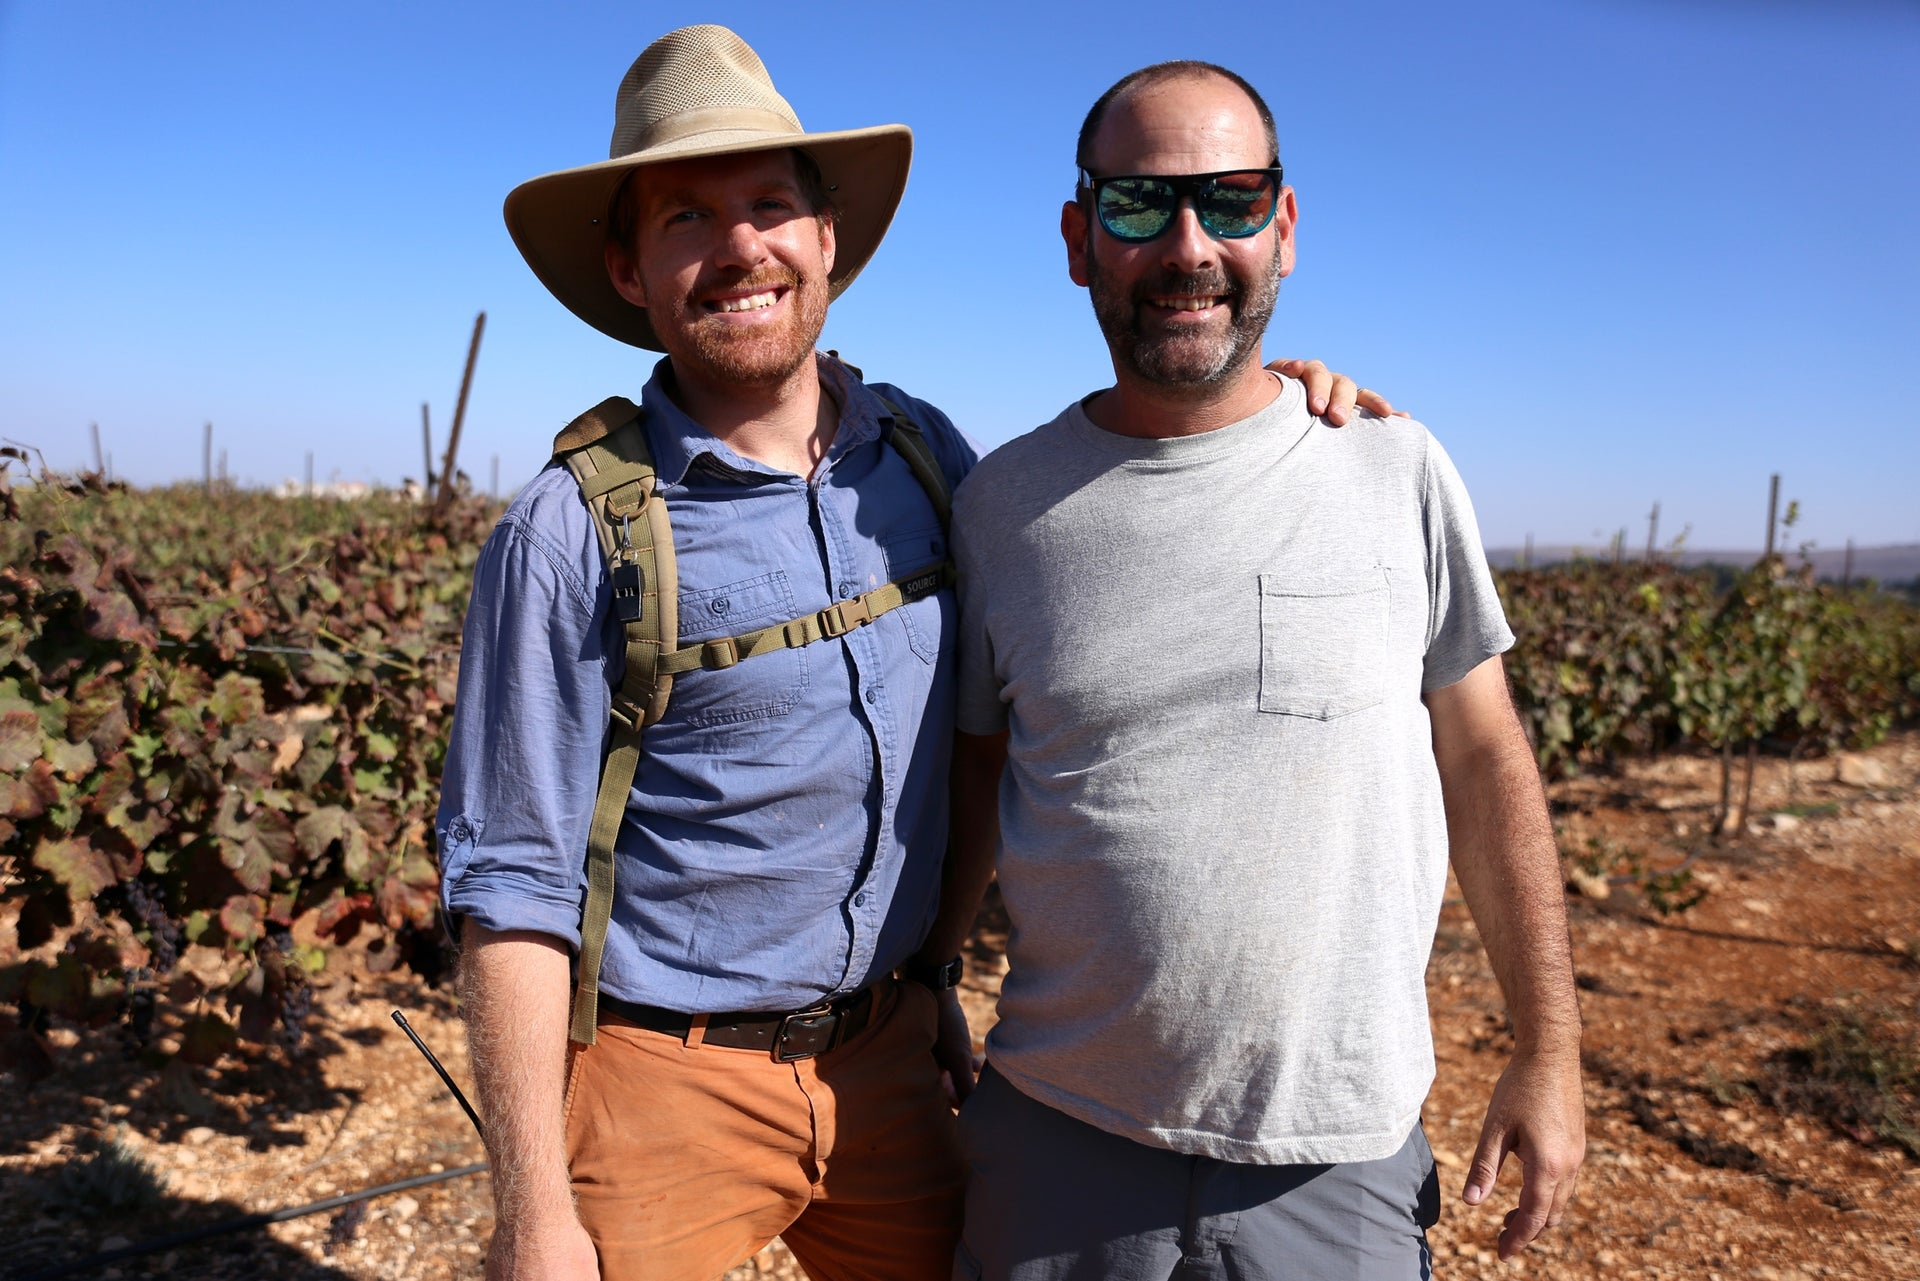 """Nir Lavie, owner of Tura Winery, and Caleb Waller, son of Hayovel founder Tommy Waller. Asked if the winery was profitable, Lavie responds: """"Baruch Hashem"""""""